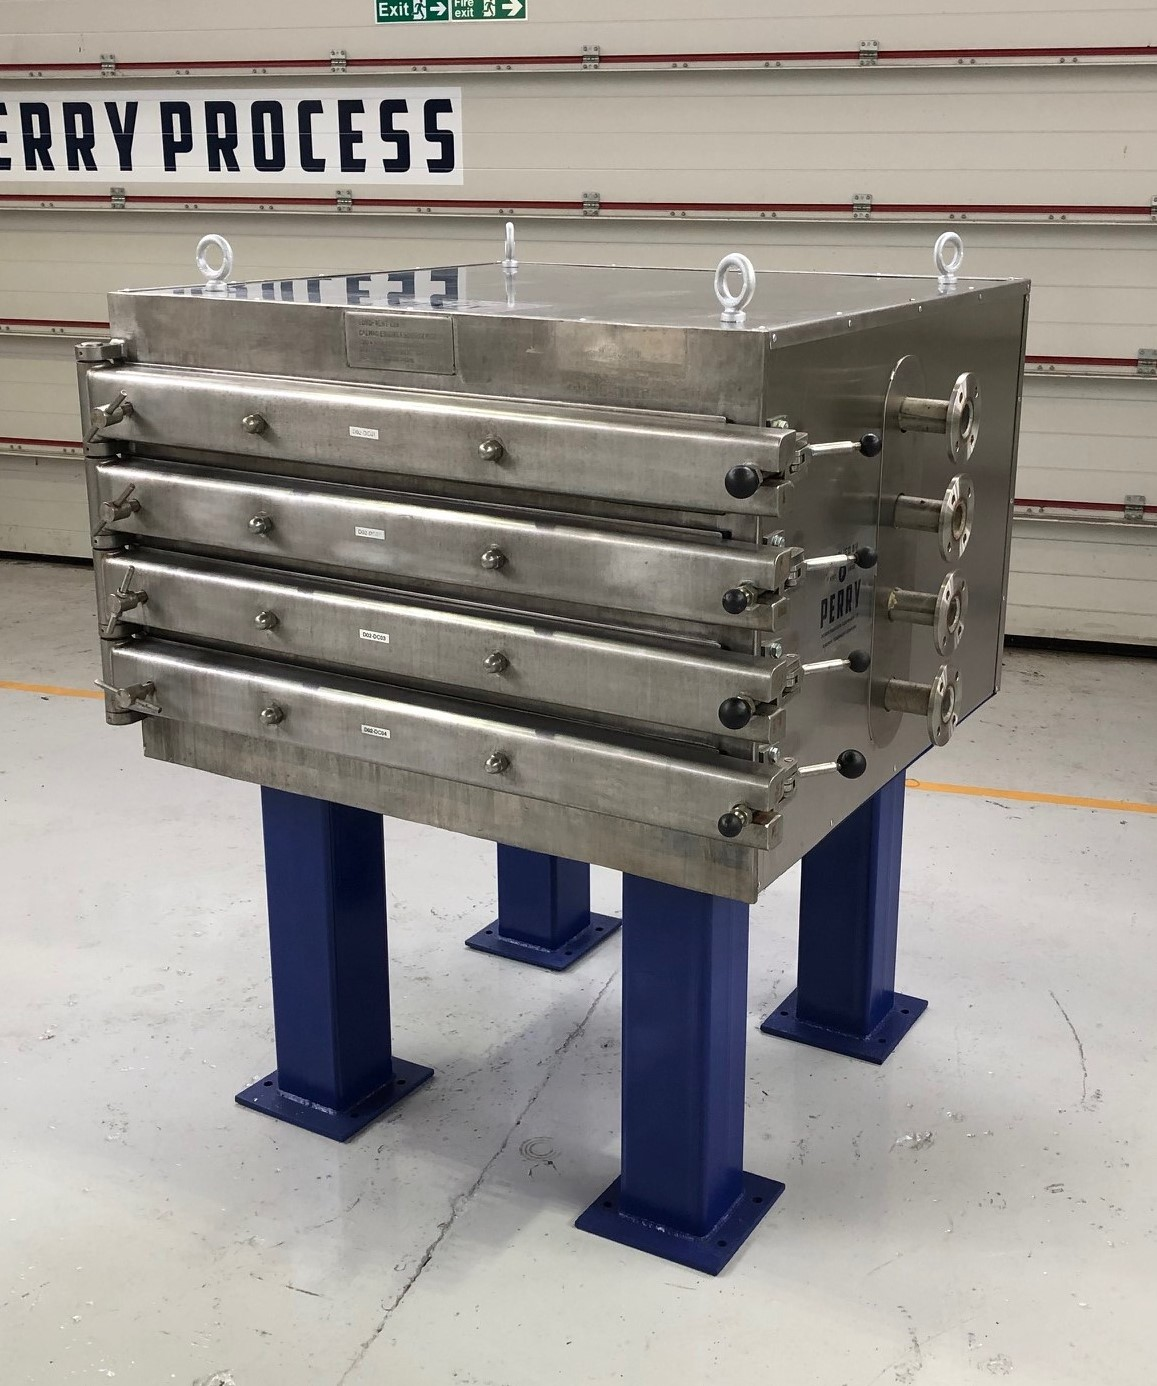 43 Sq. Foot,  Shelves Eurovent Stainless Steel Vacuum Tray Dryer